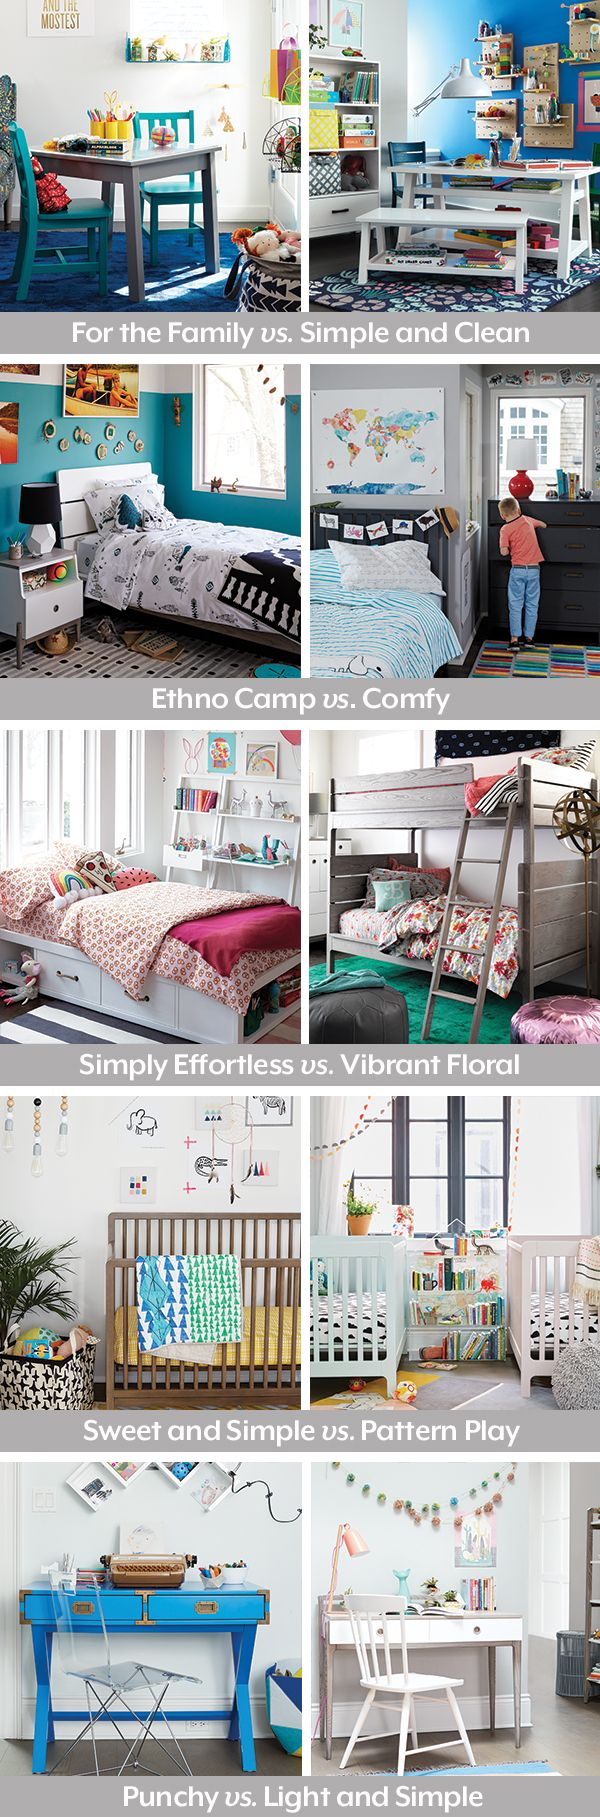 best teenage bedroom goals images on pinterest bedroom ideas